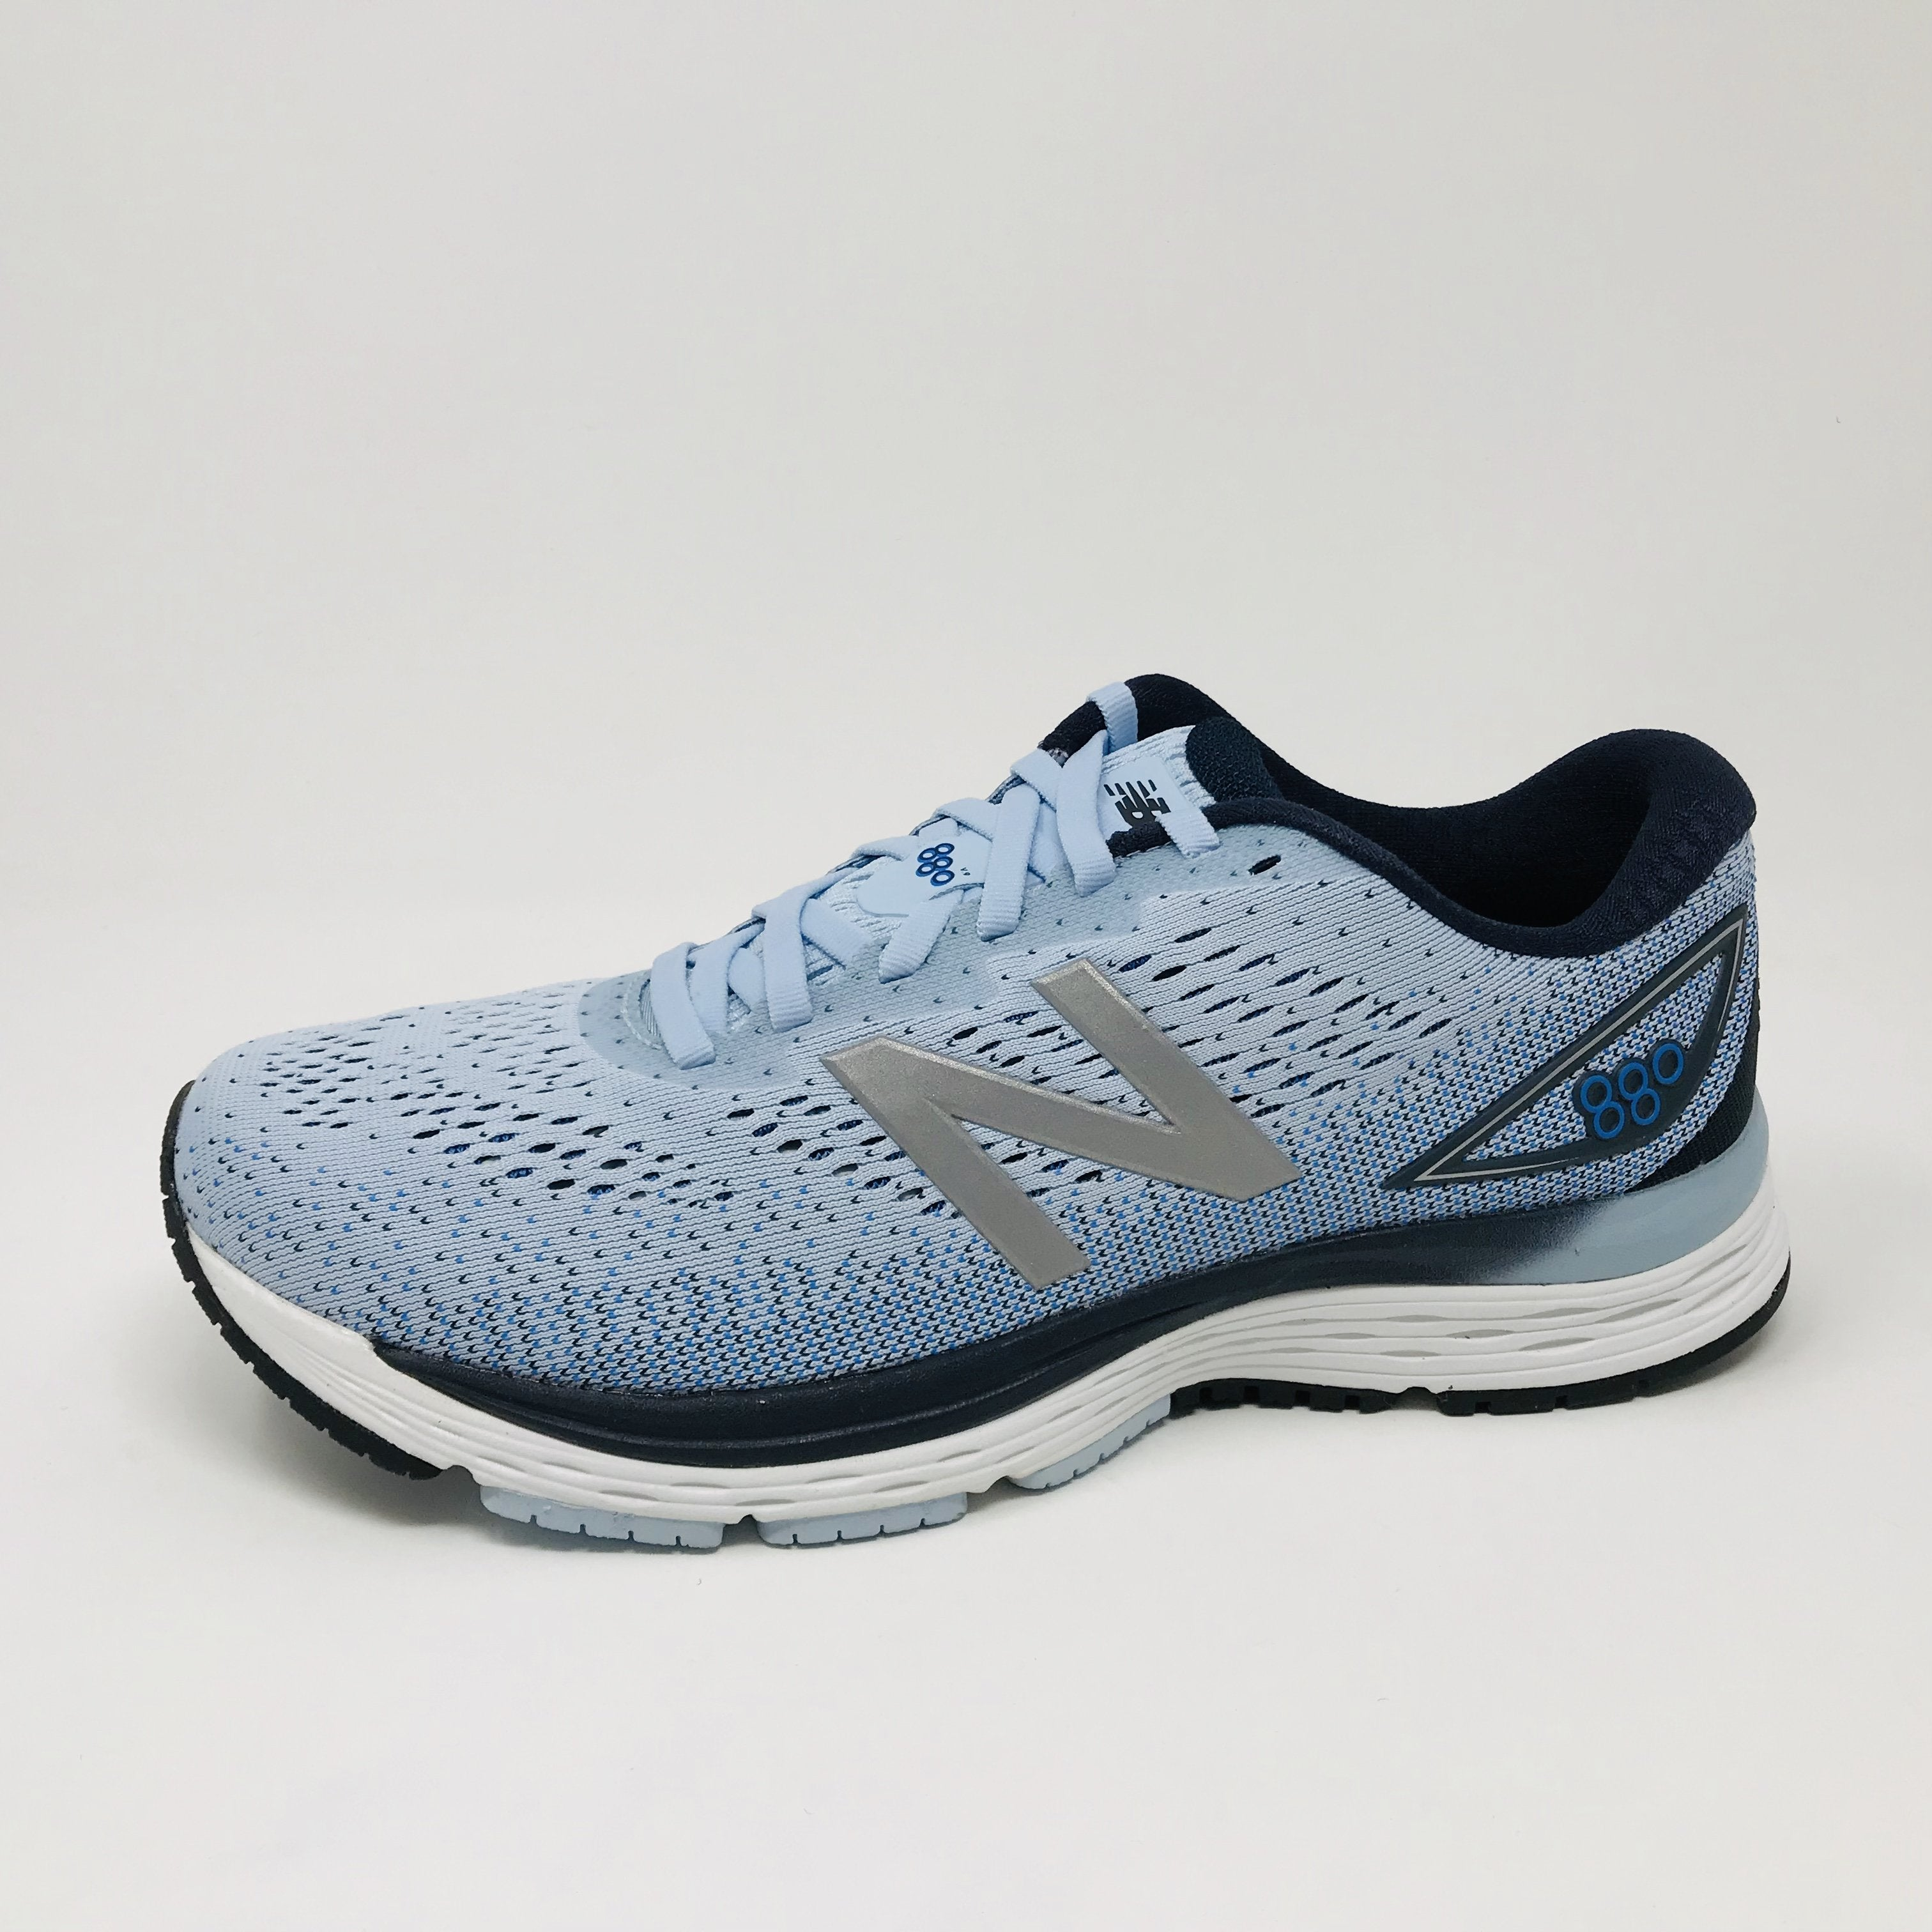 Women's 880 v9 (AB - light blue)